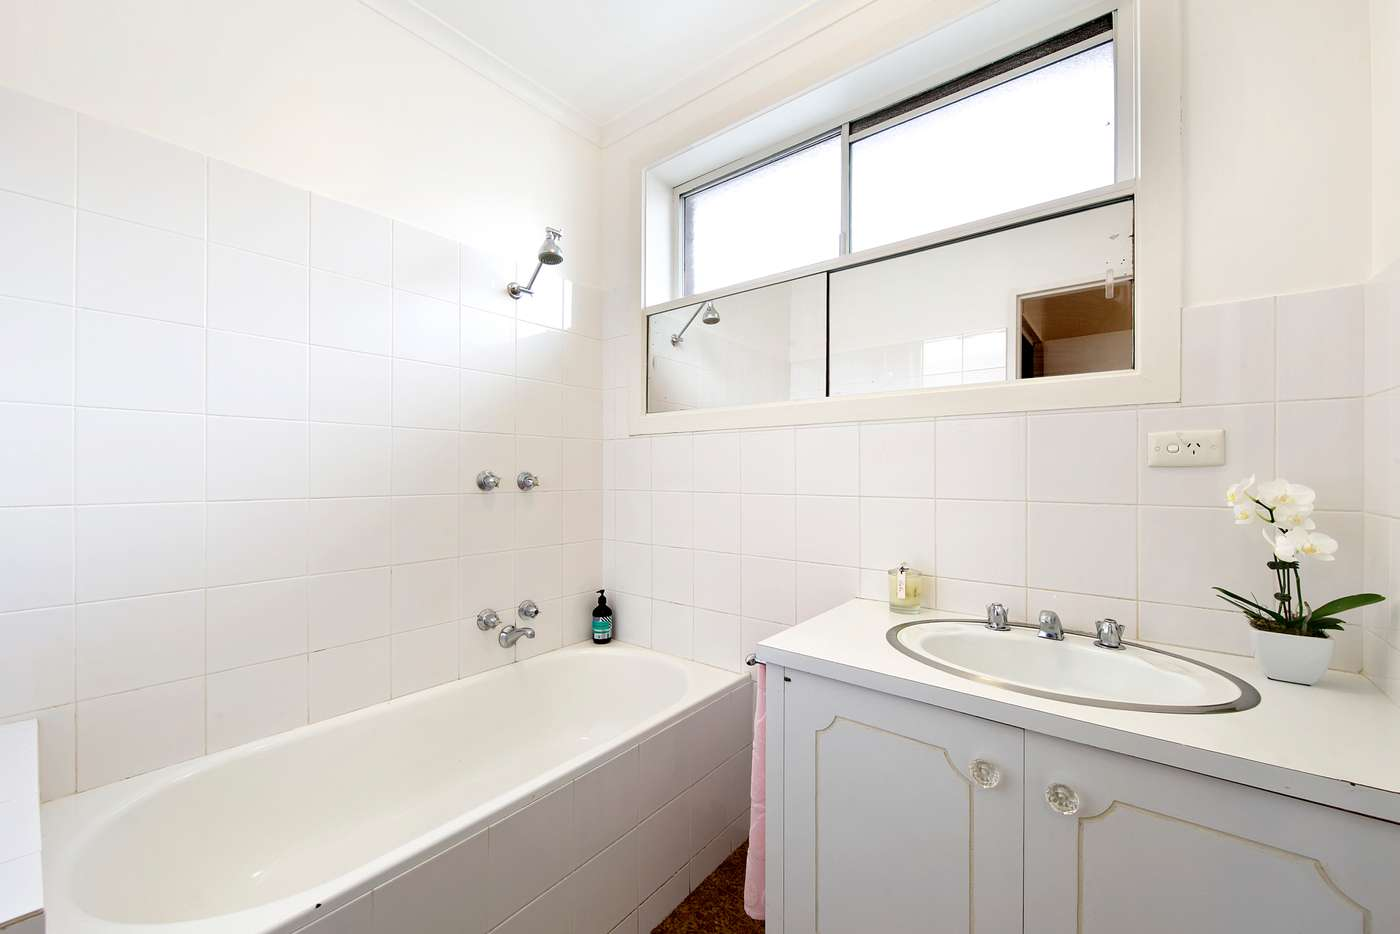 Sixth view of Homely apartment listing, 4/24 Bennett Street, Richmond VIC 3121